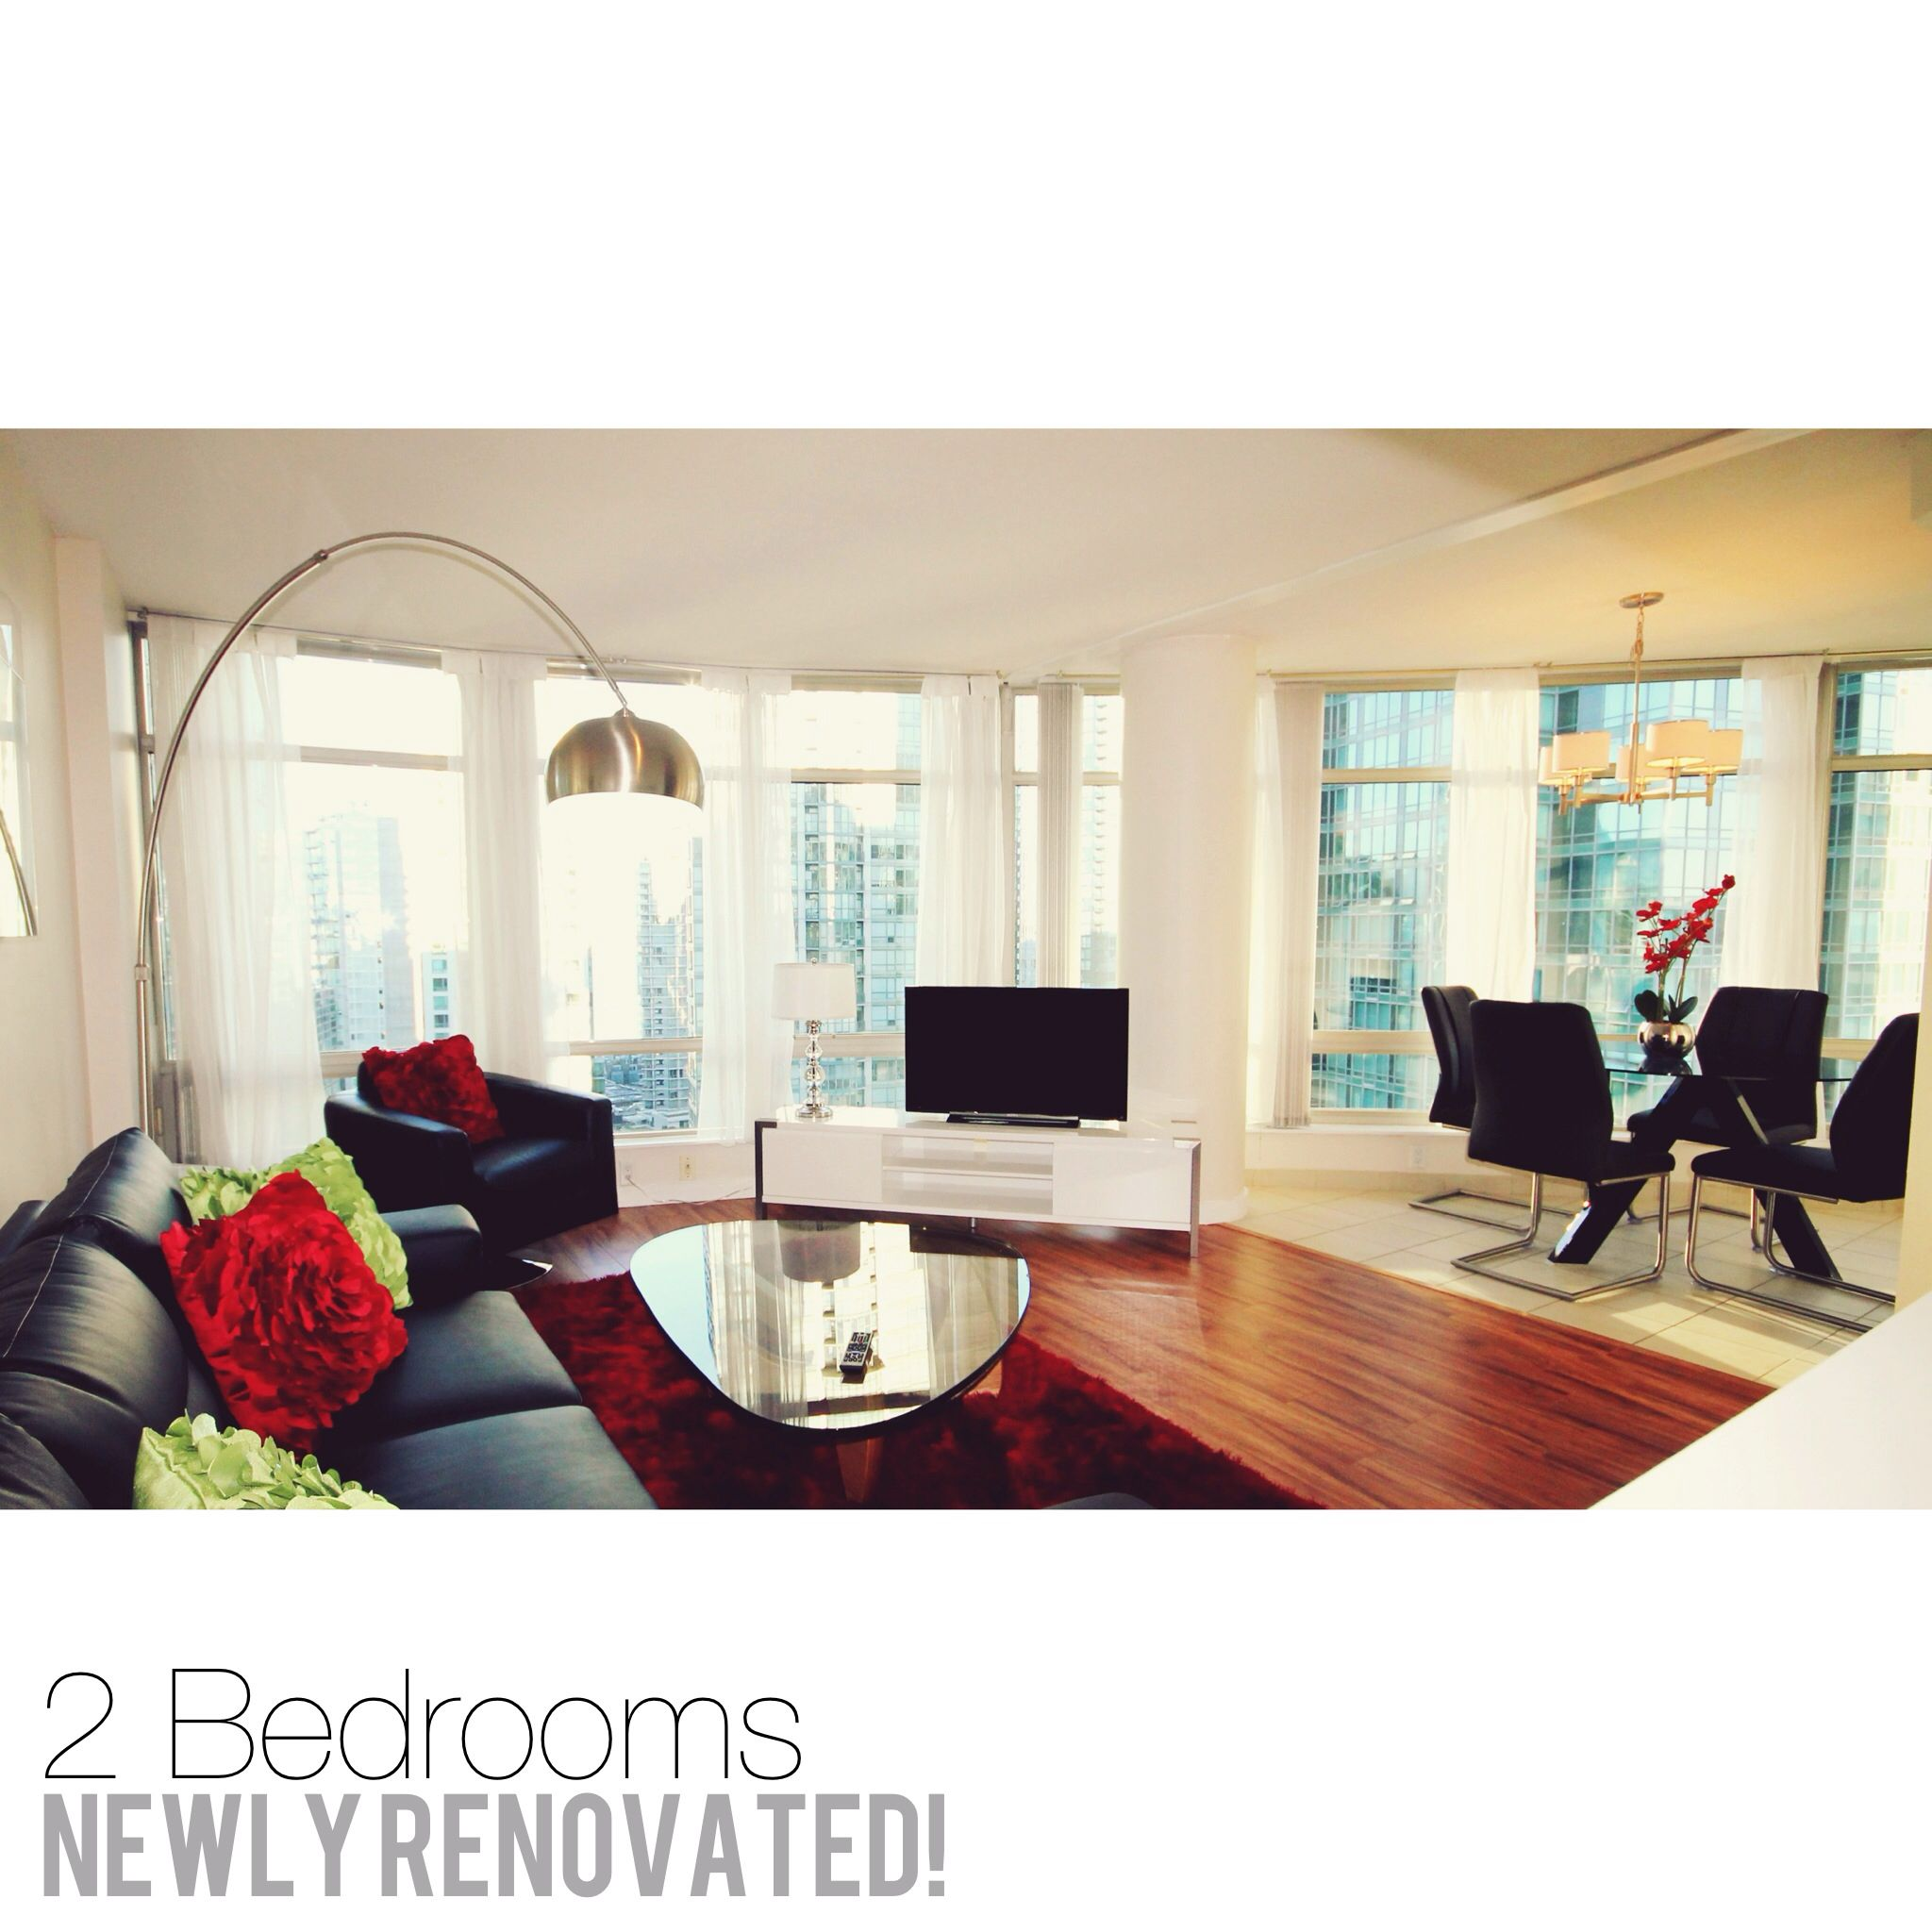 Newly Renovated 2 Bedroom Furnished #apartment At The